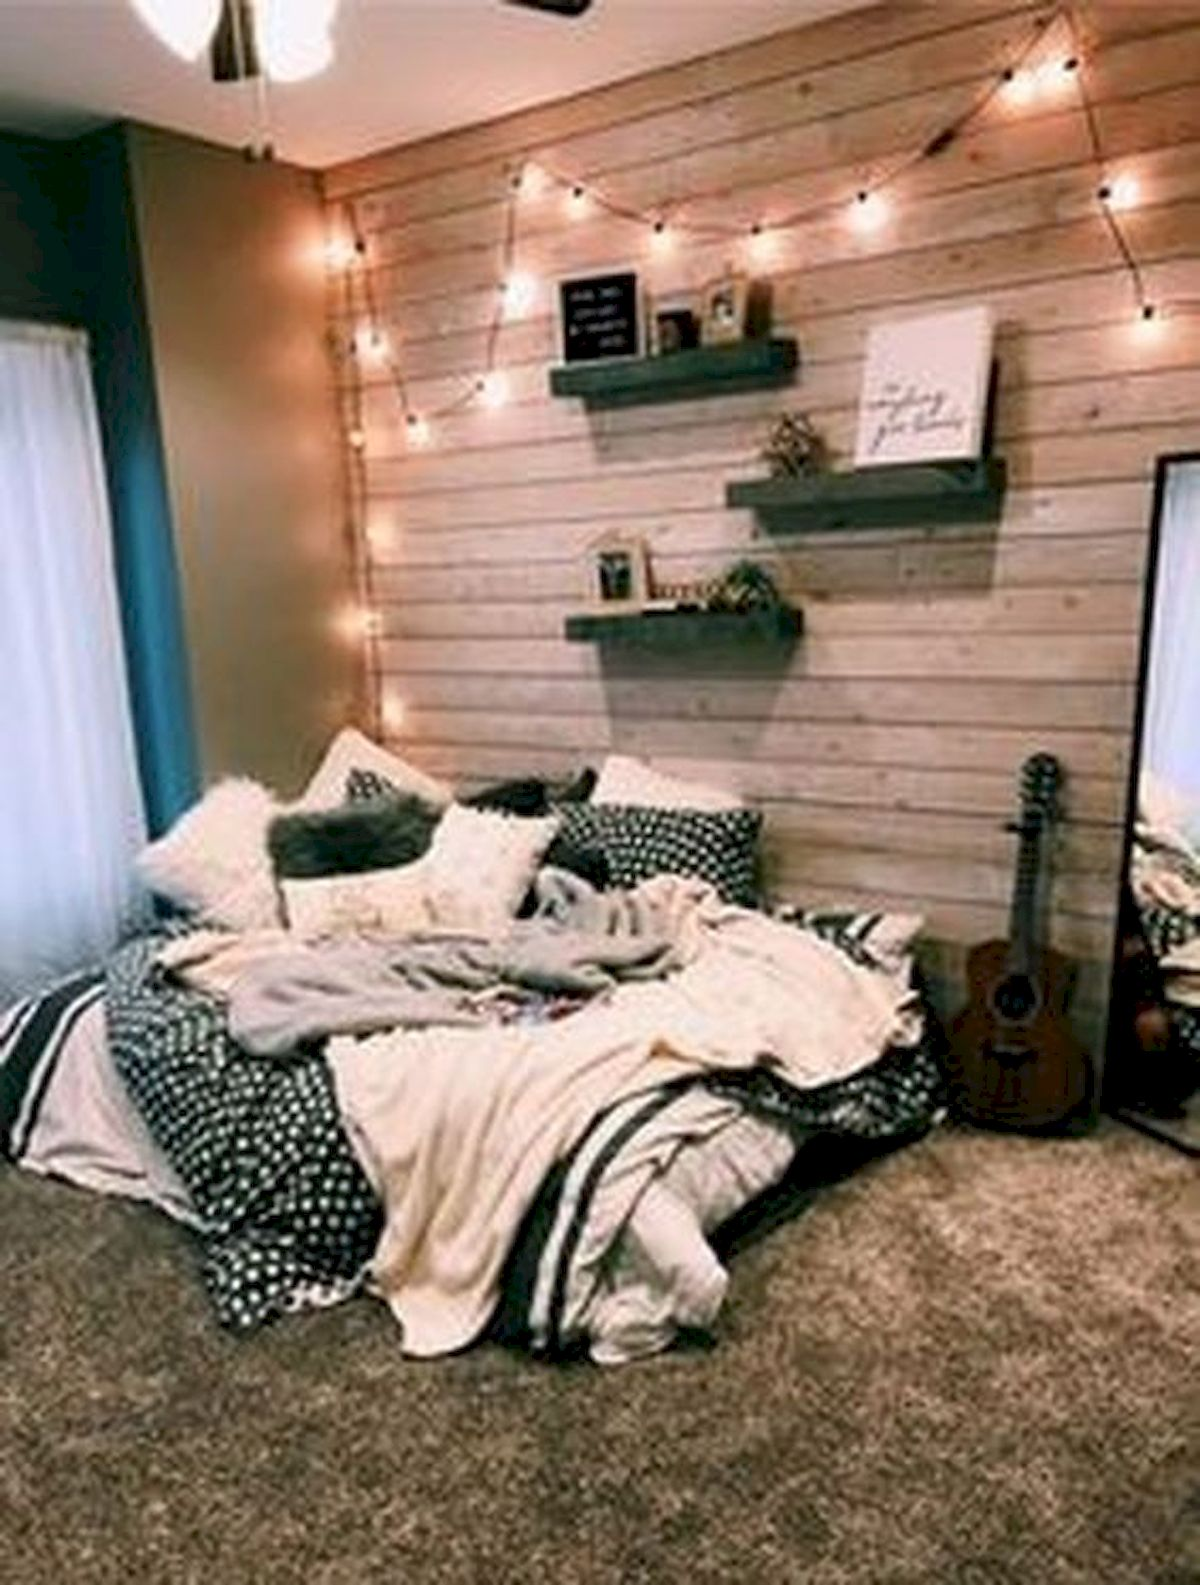 40 Cute Small Bedroom Design and Decor Ideas for Teenage Girl (21)